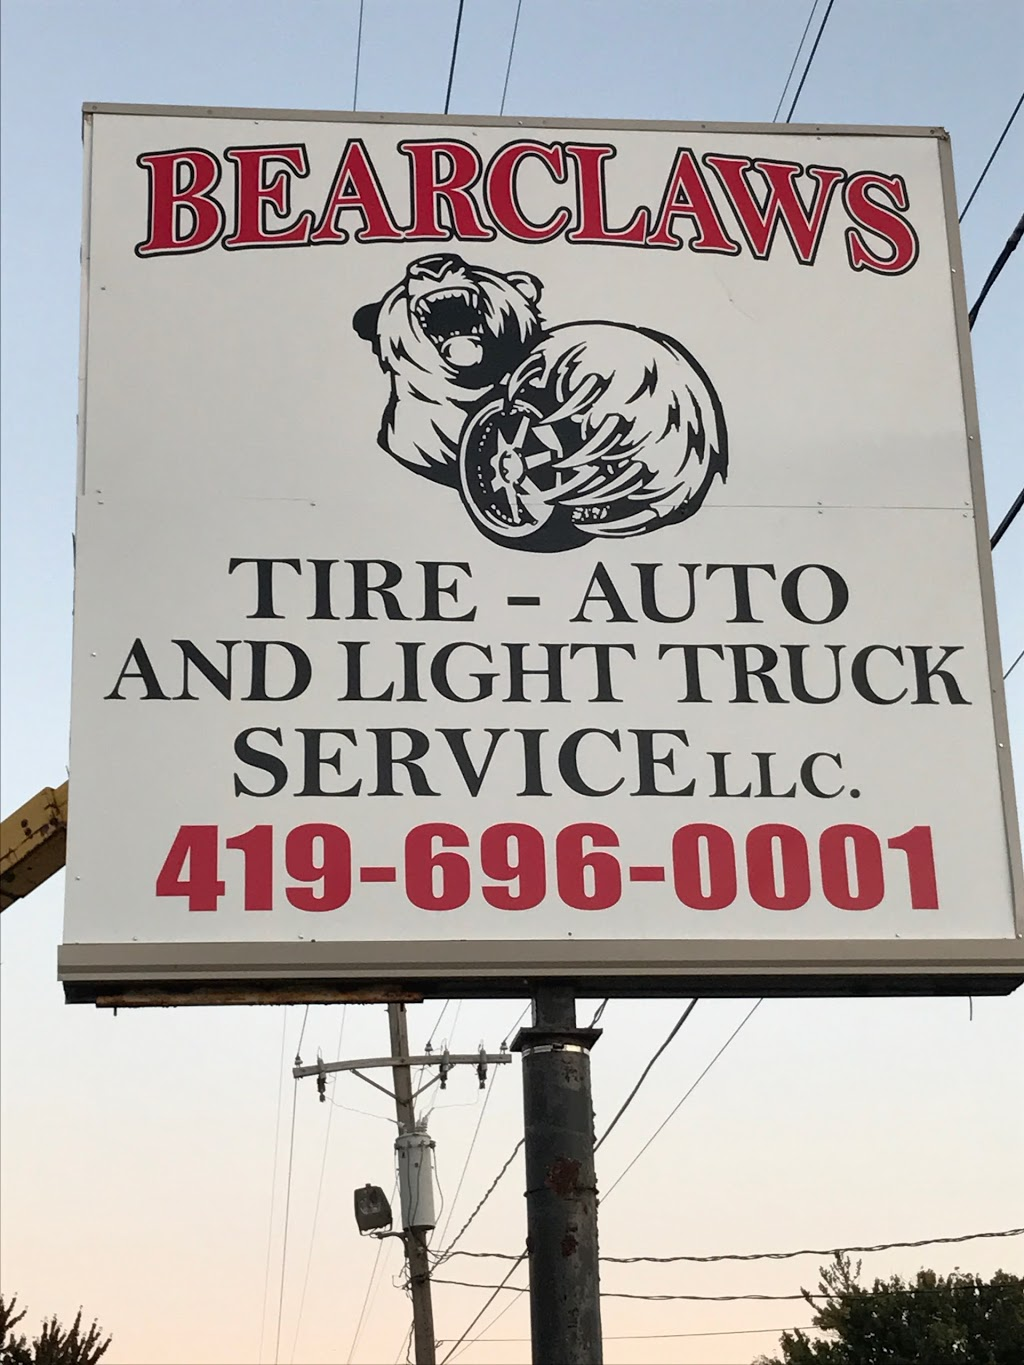 BearClaws Tire-Auto and Light Truck Service LLC - car repair  | Photo 7 of 8 | Address: 5601 Woodville Rd, Northwood, OH 43619, USA | Phone: (419) 696-0001